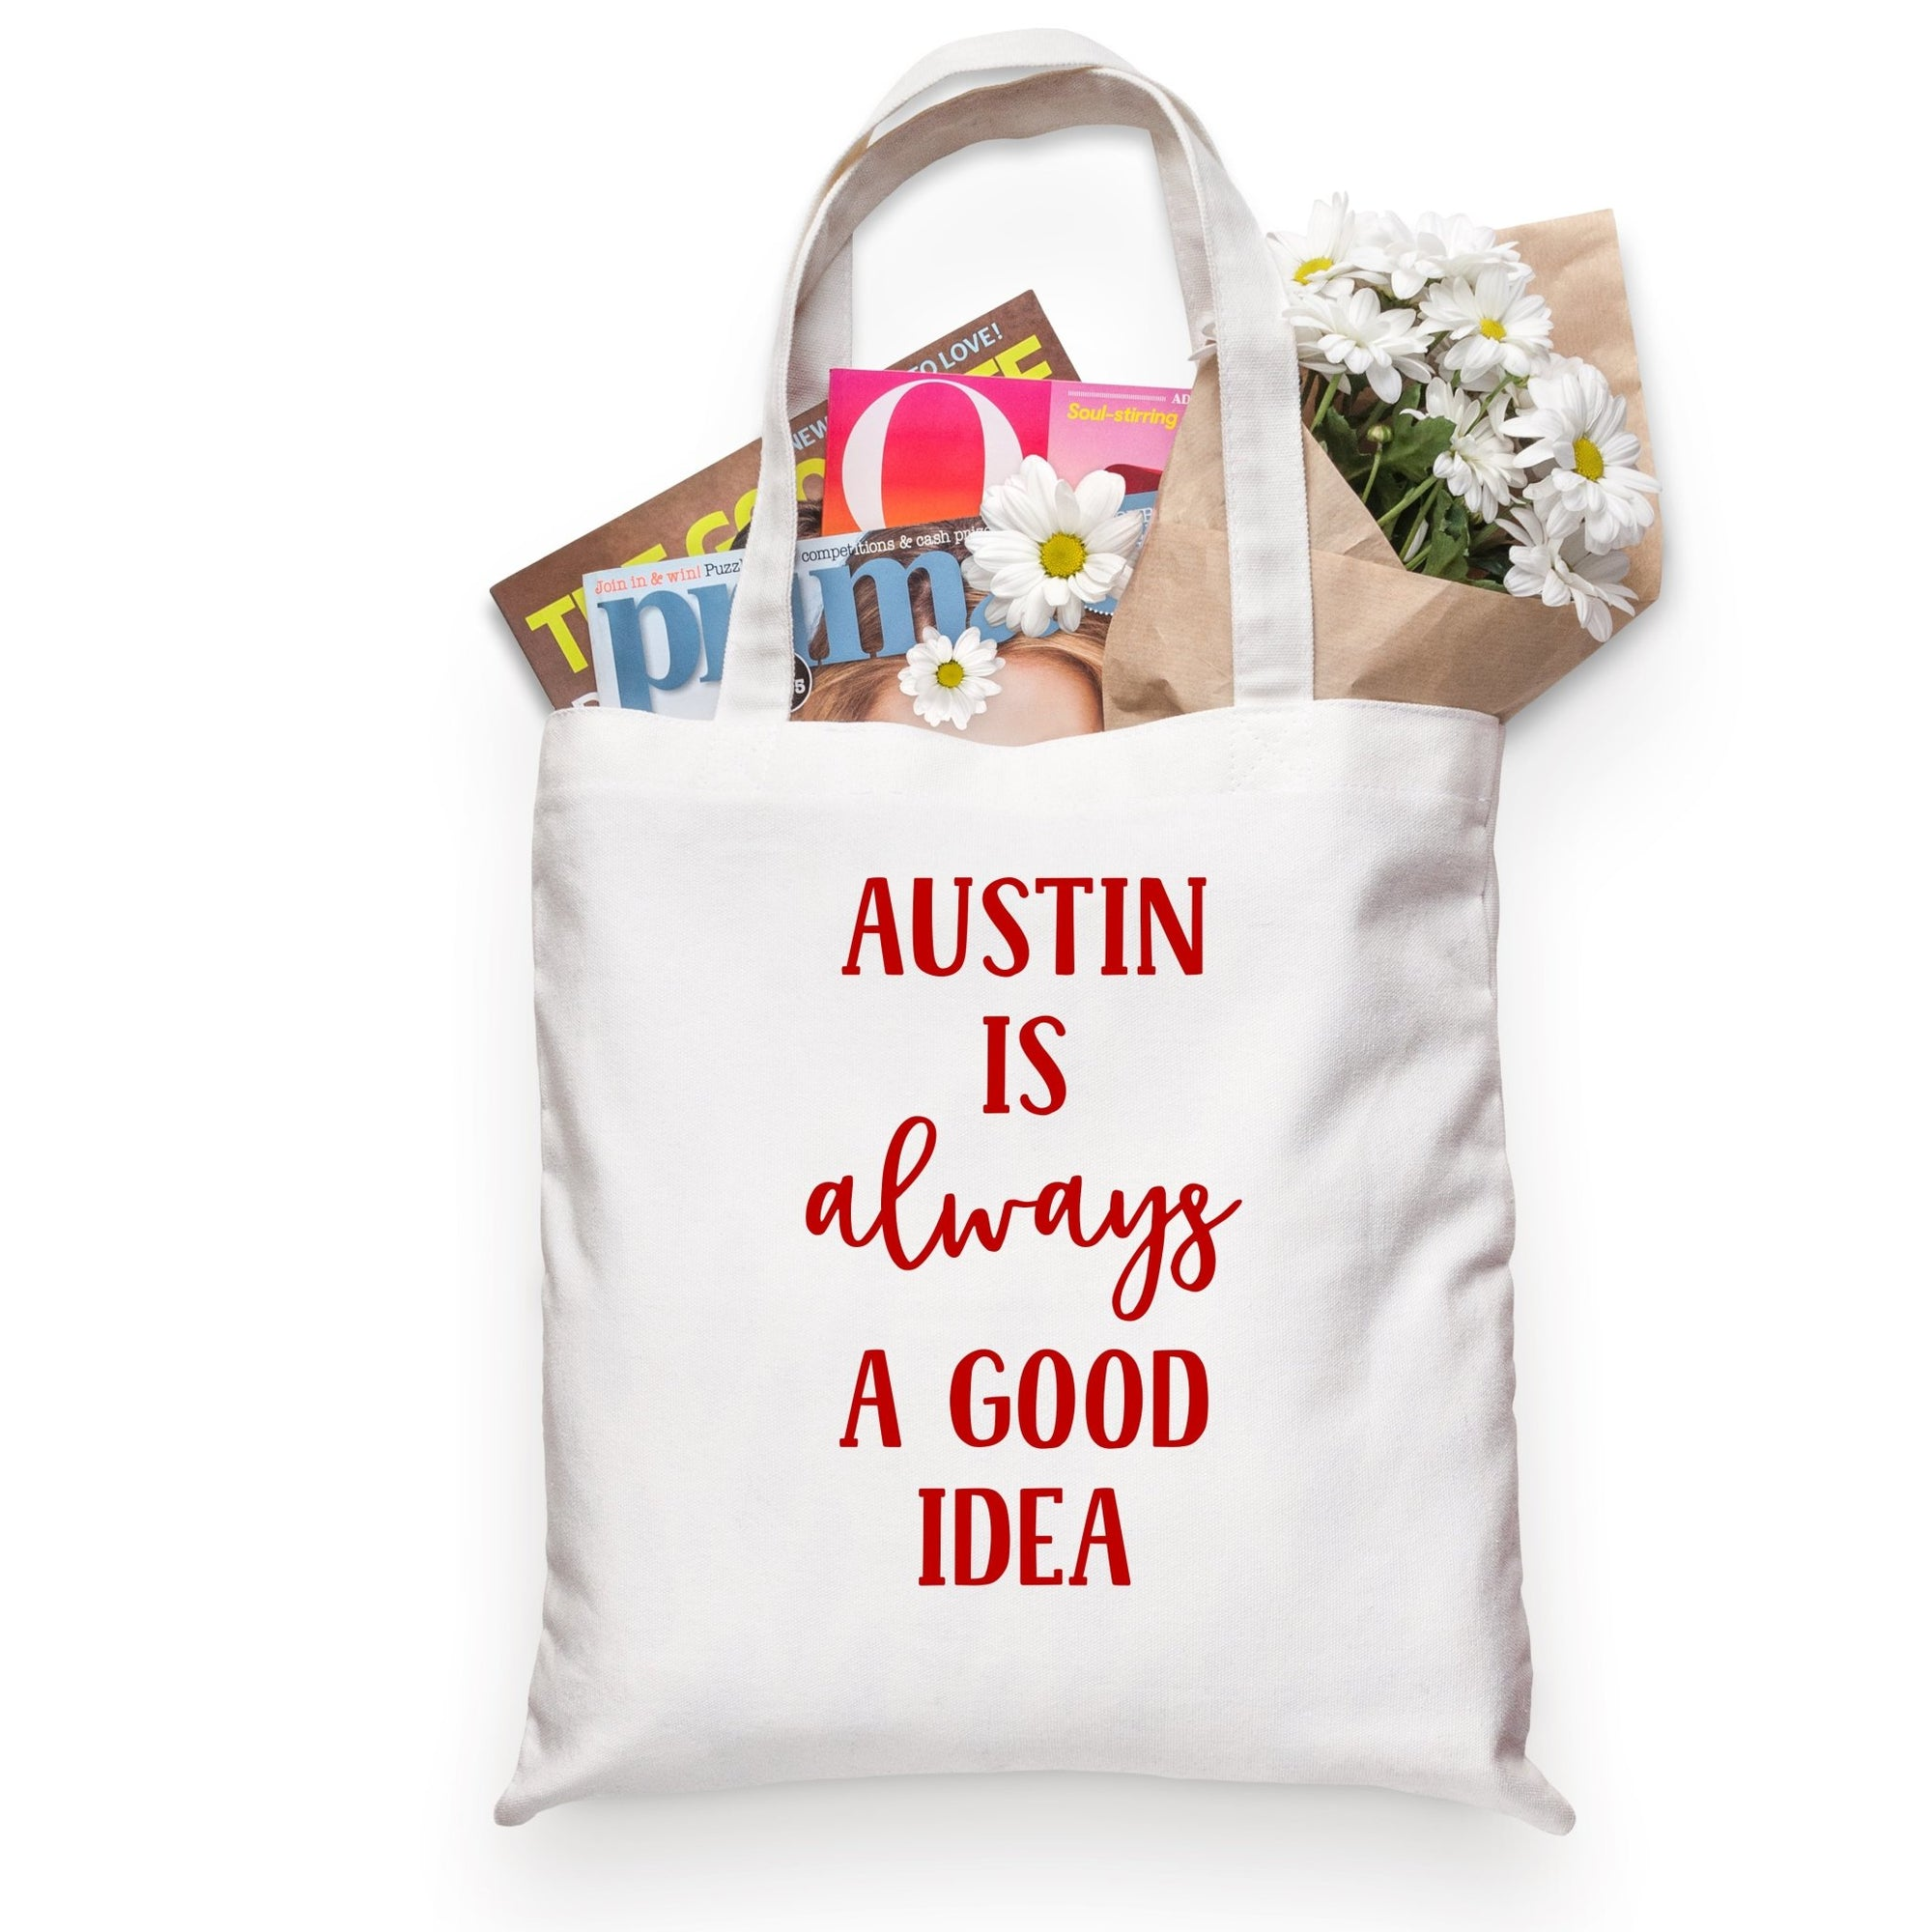 Austin Is Always A Good Idea Tote - Sprinkled With Pink #bachelorette #custom #gifts